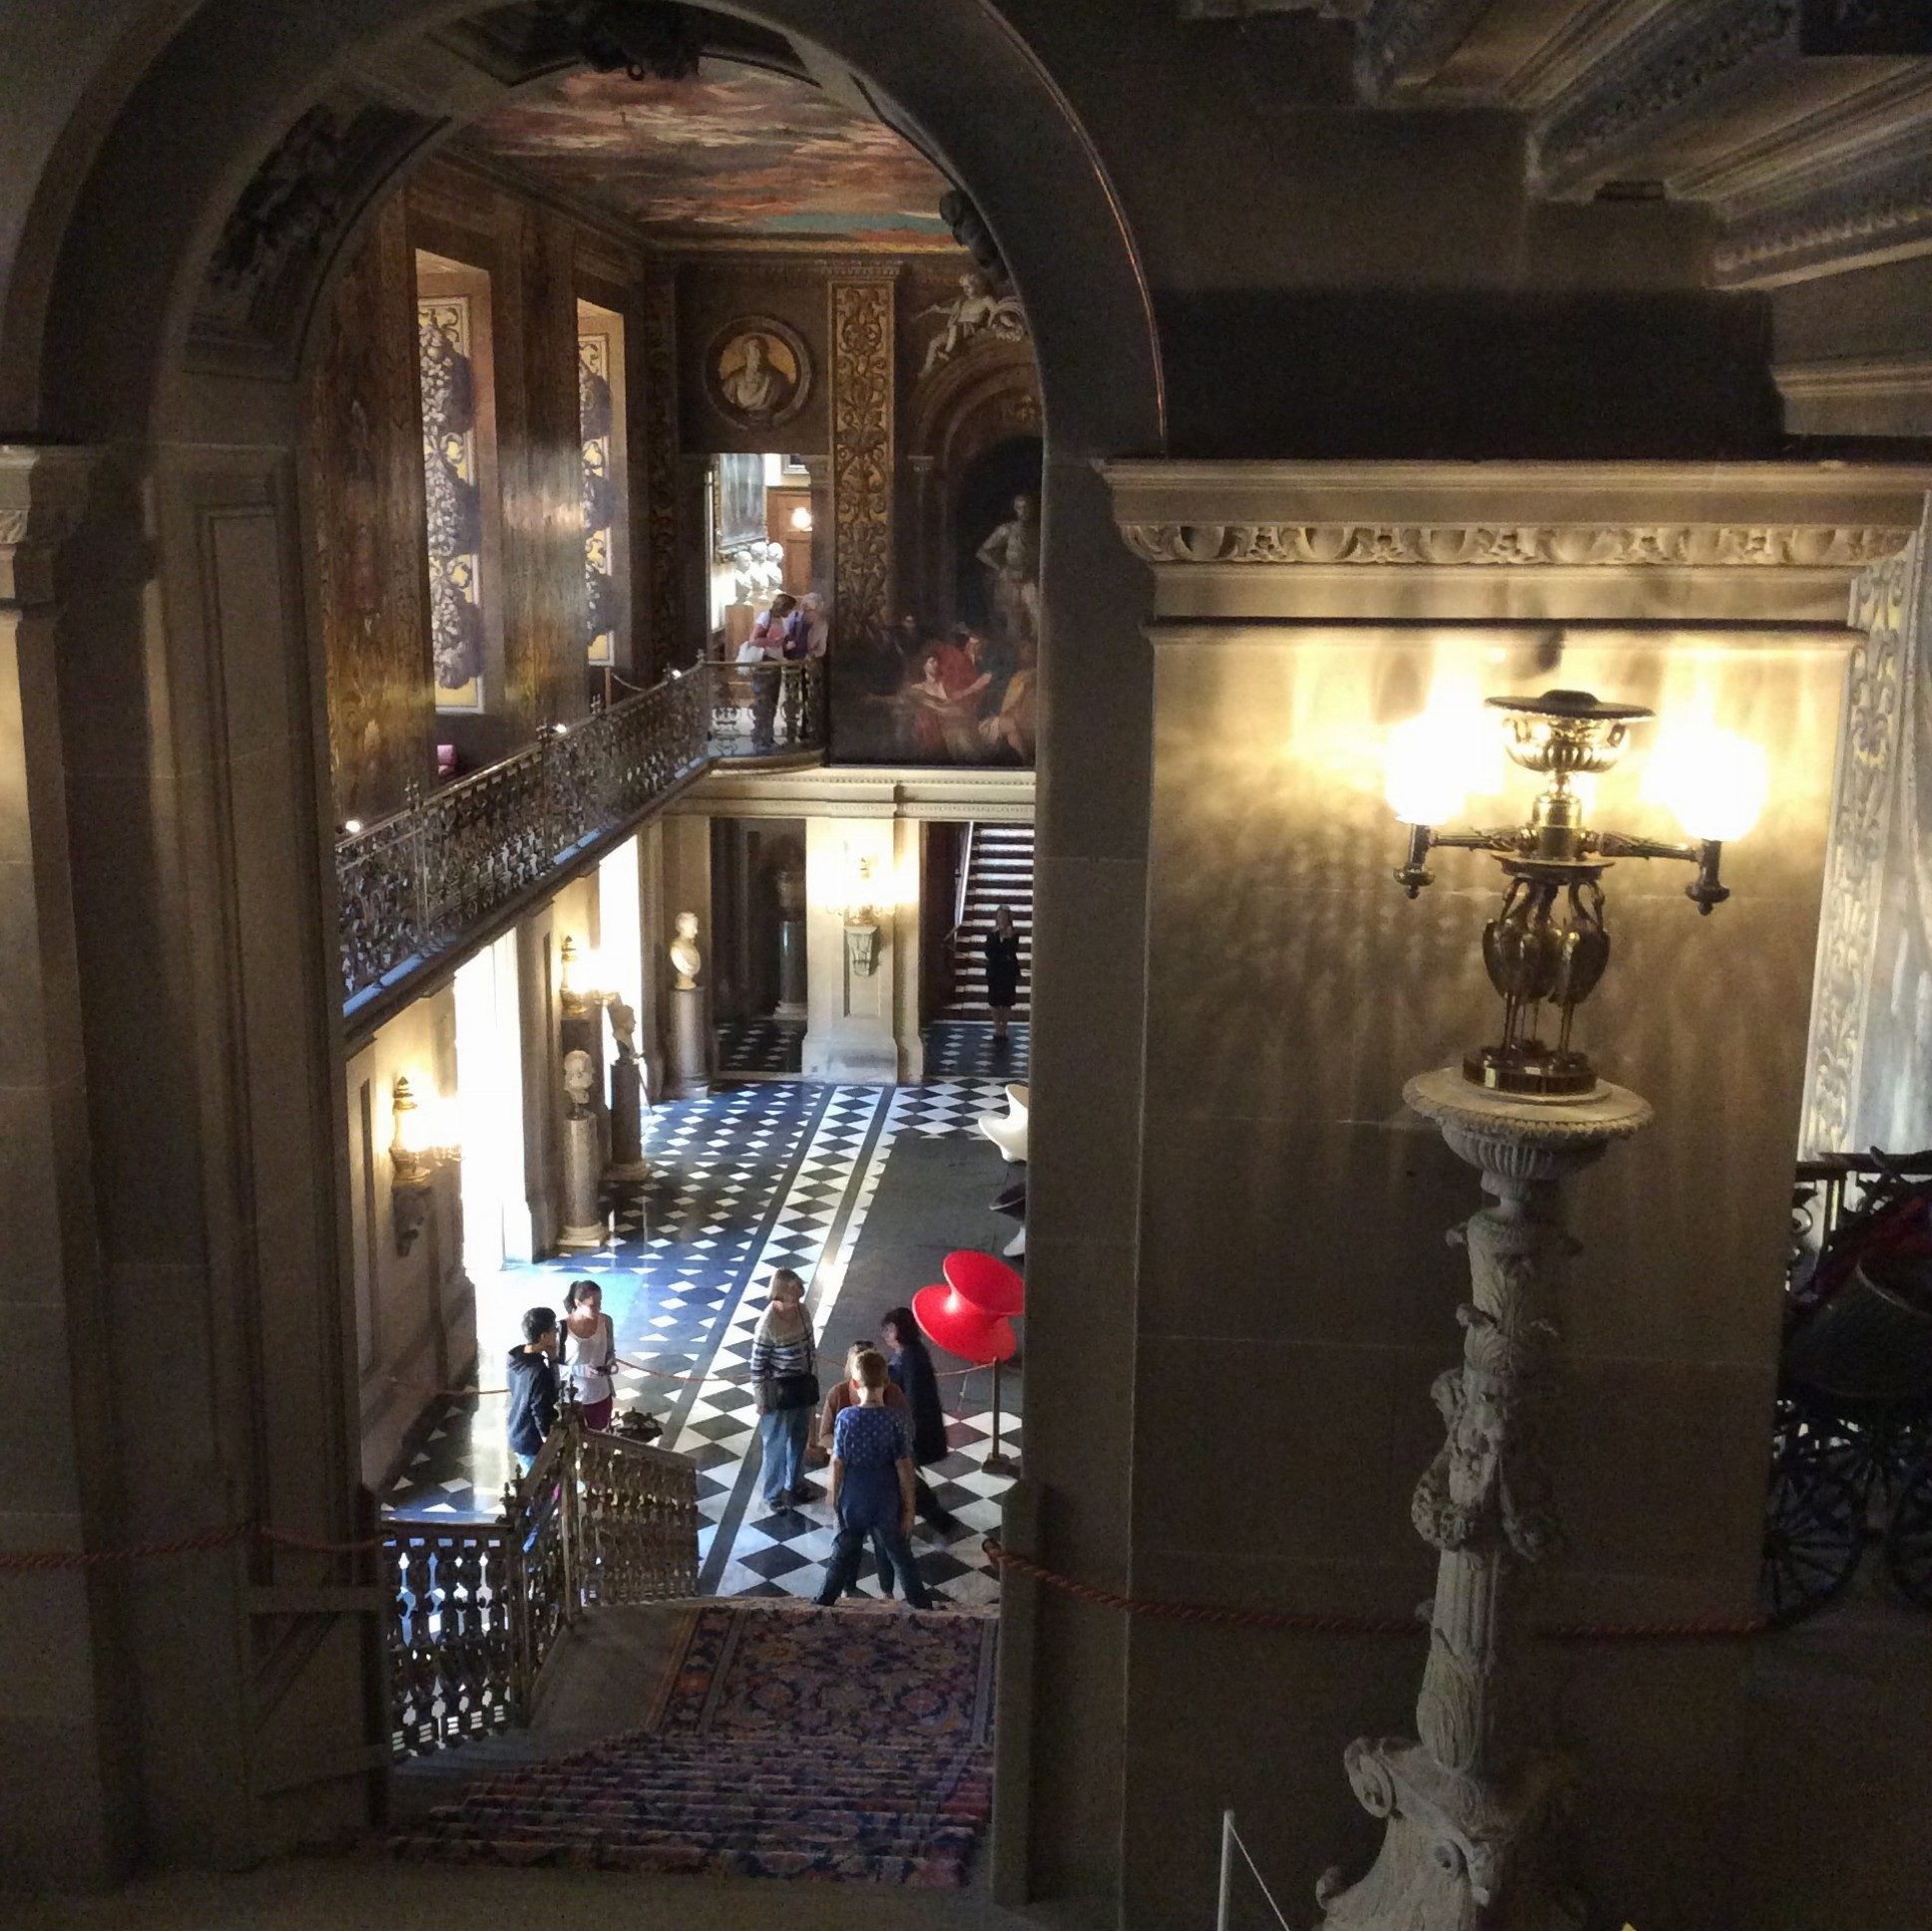 Looking down from the staircase and across to another.